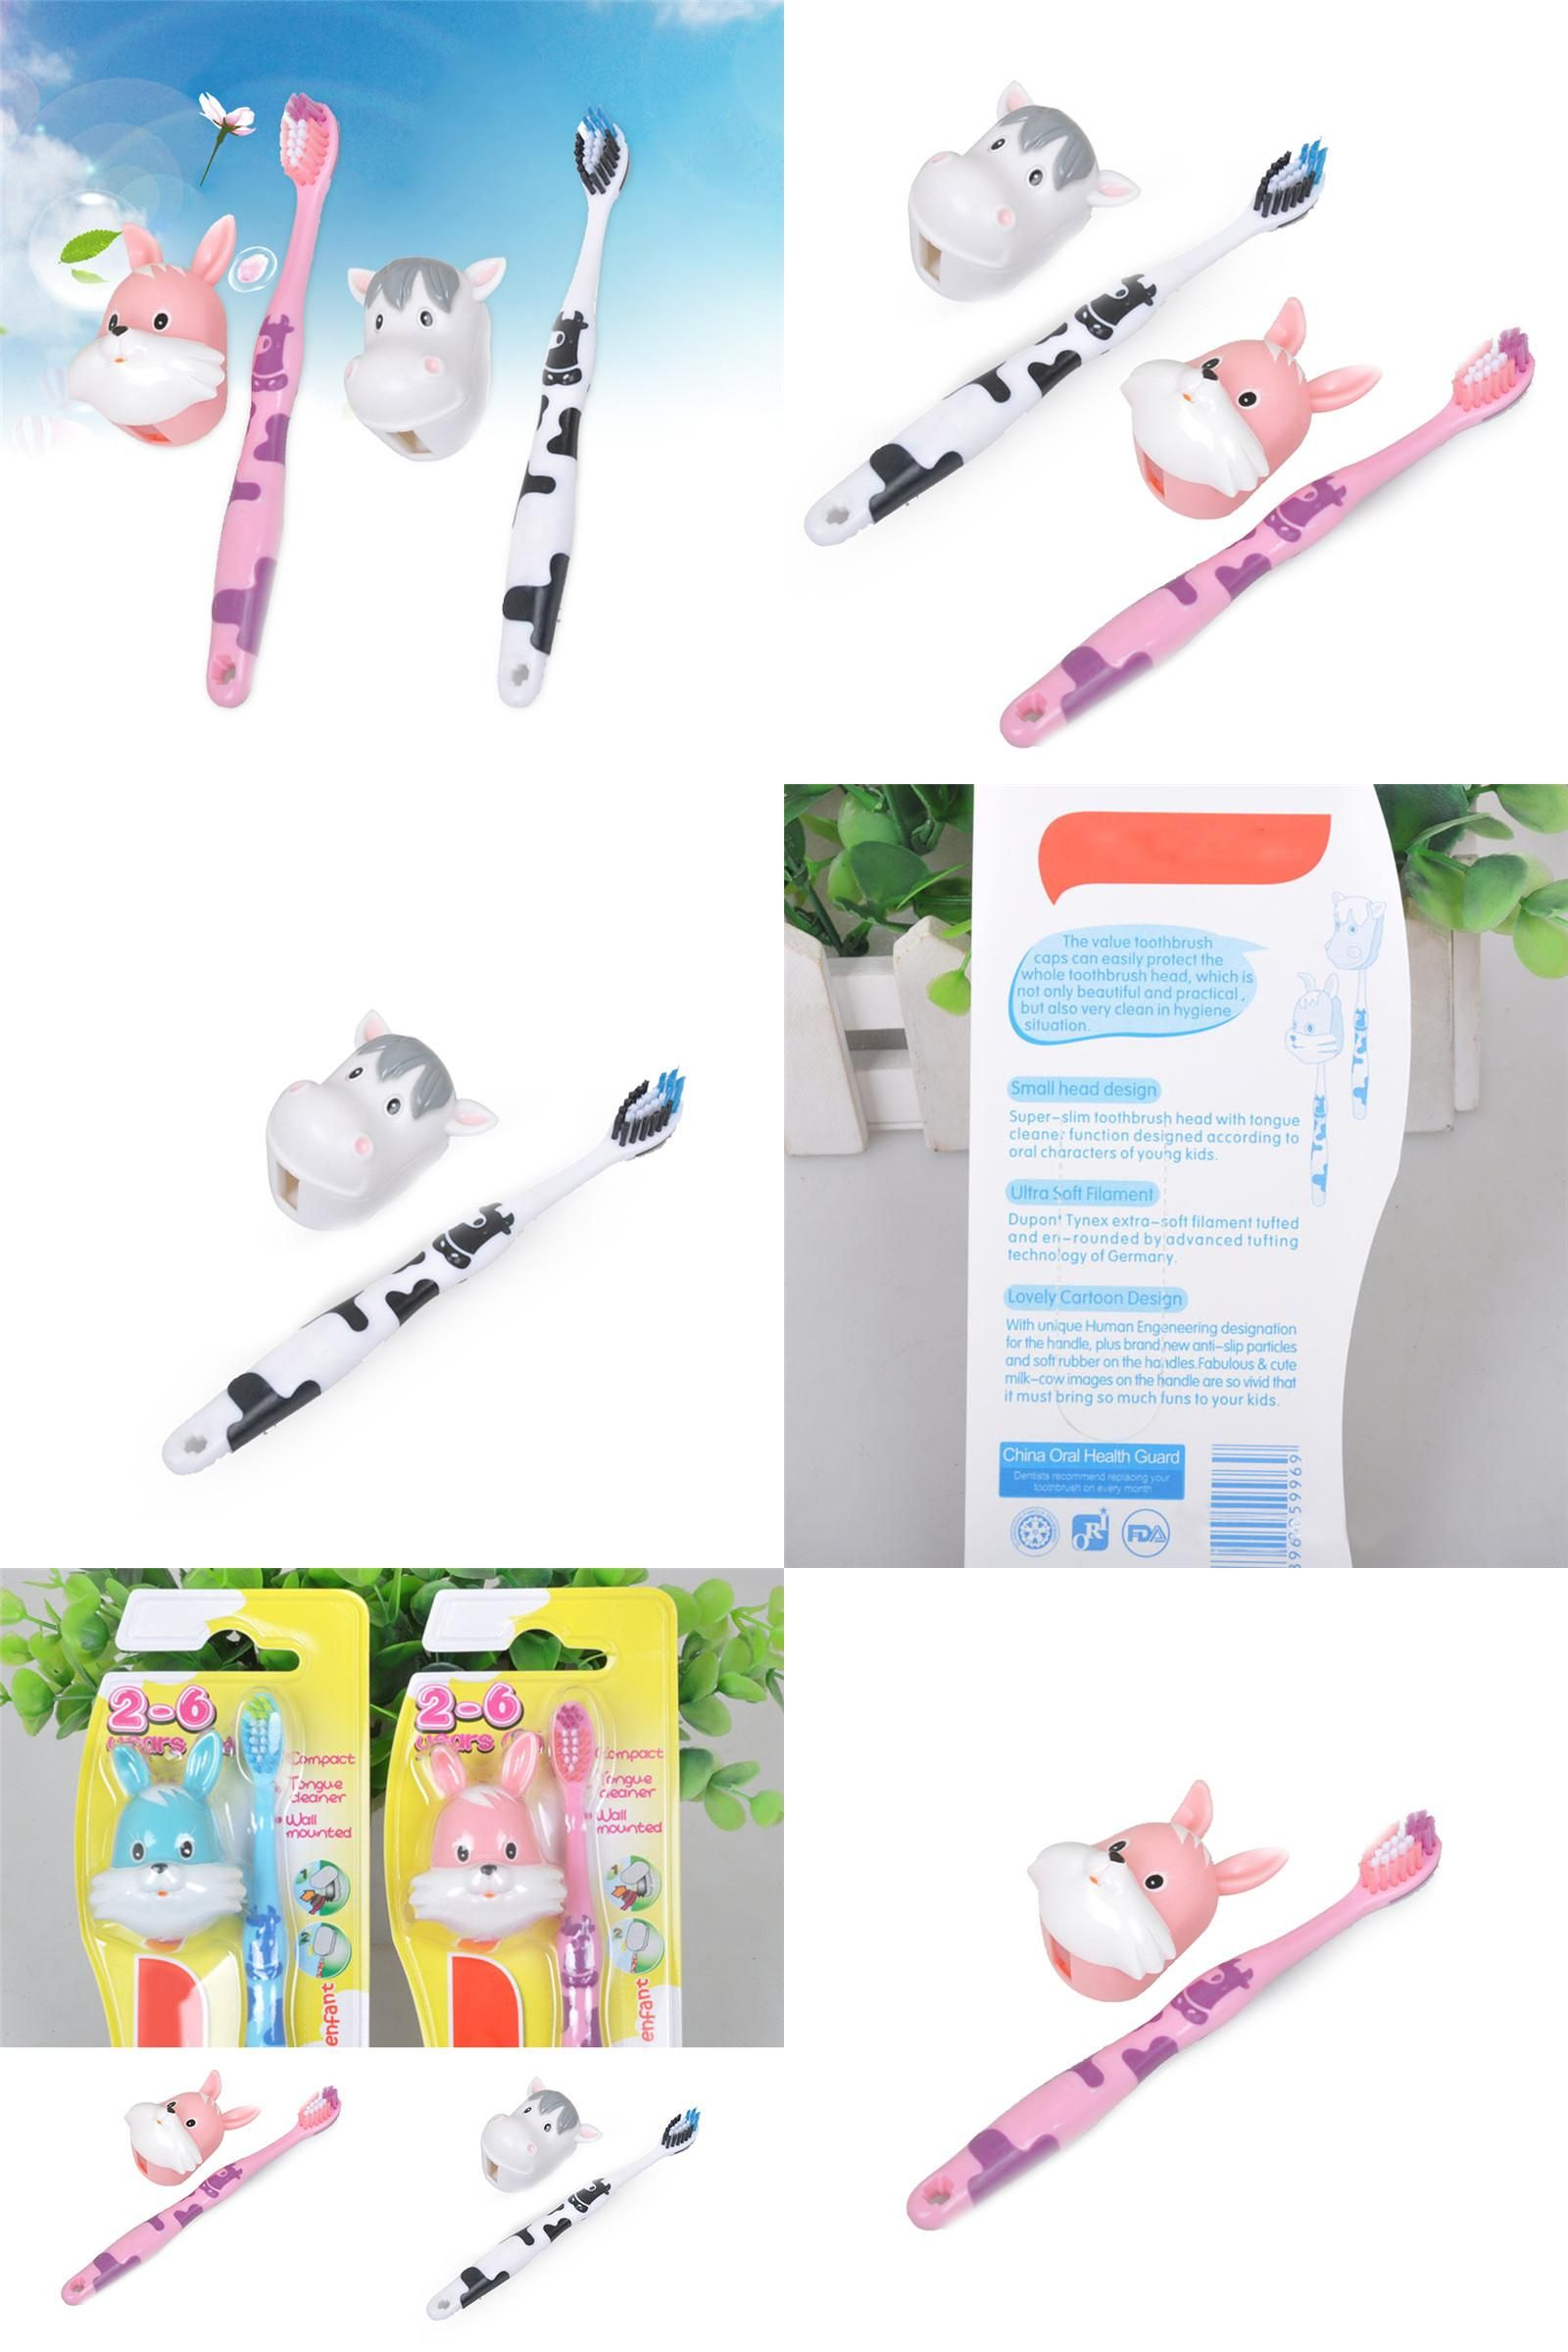 Childrens toothbrush can be not only a toy